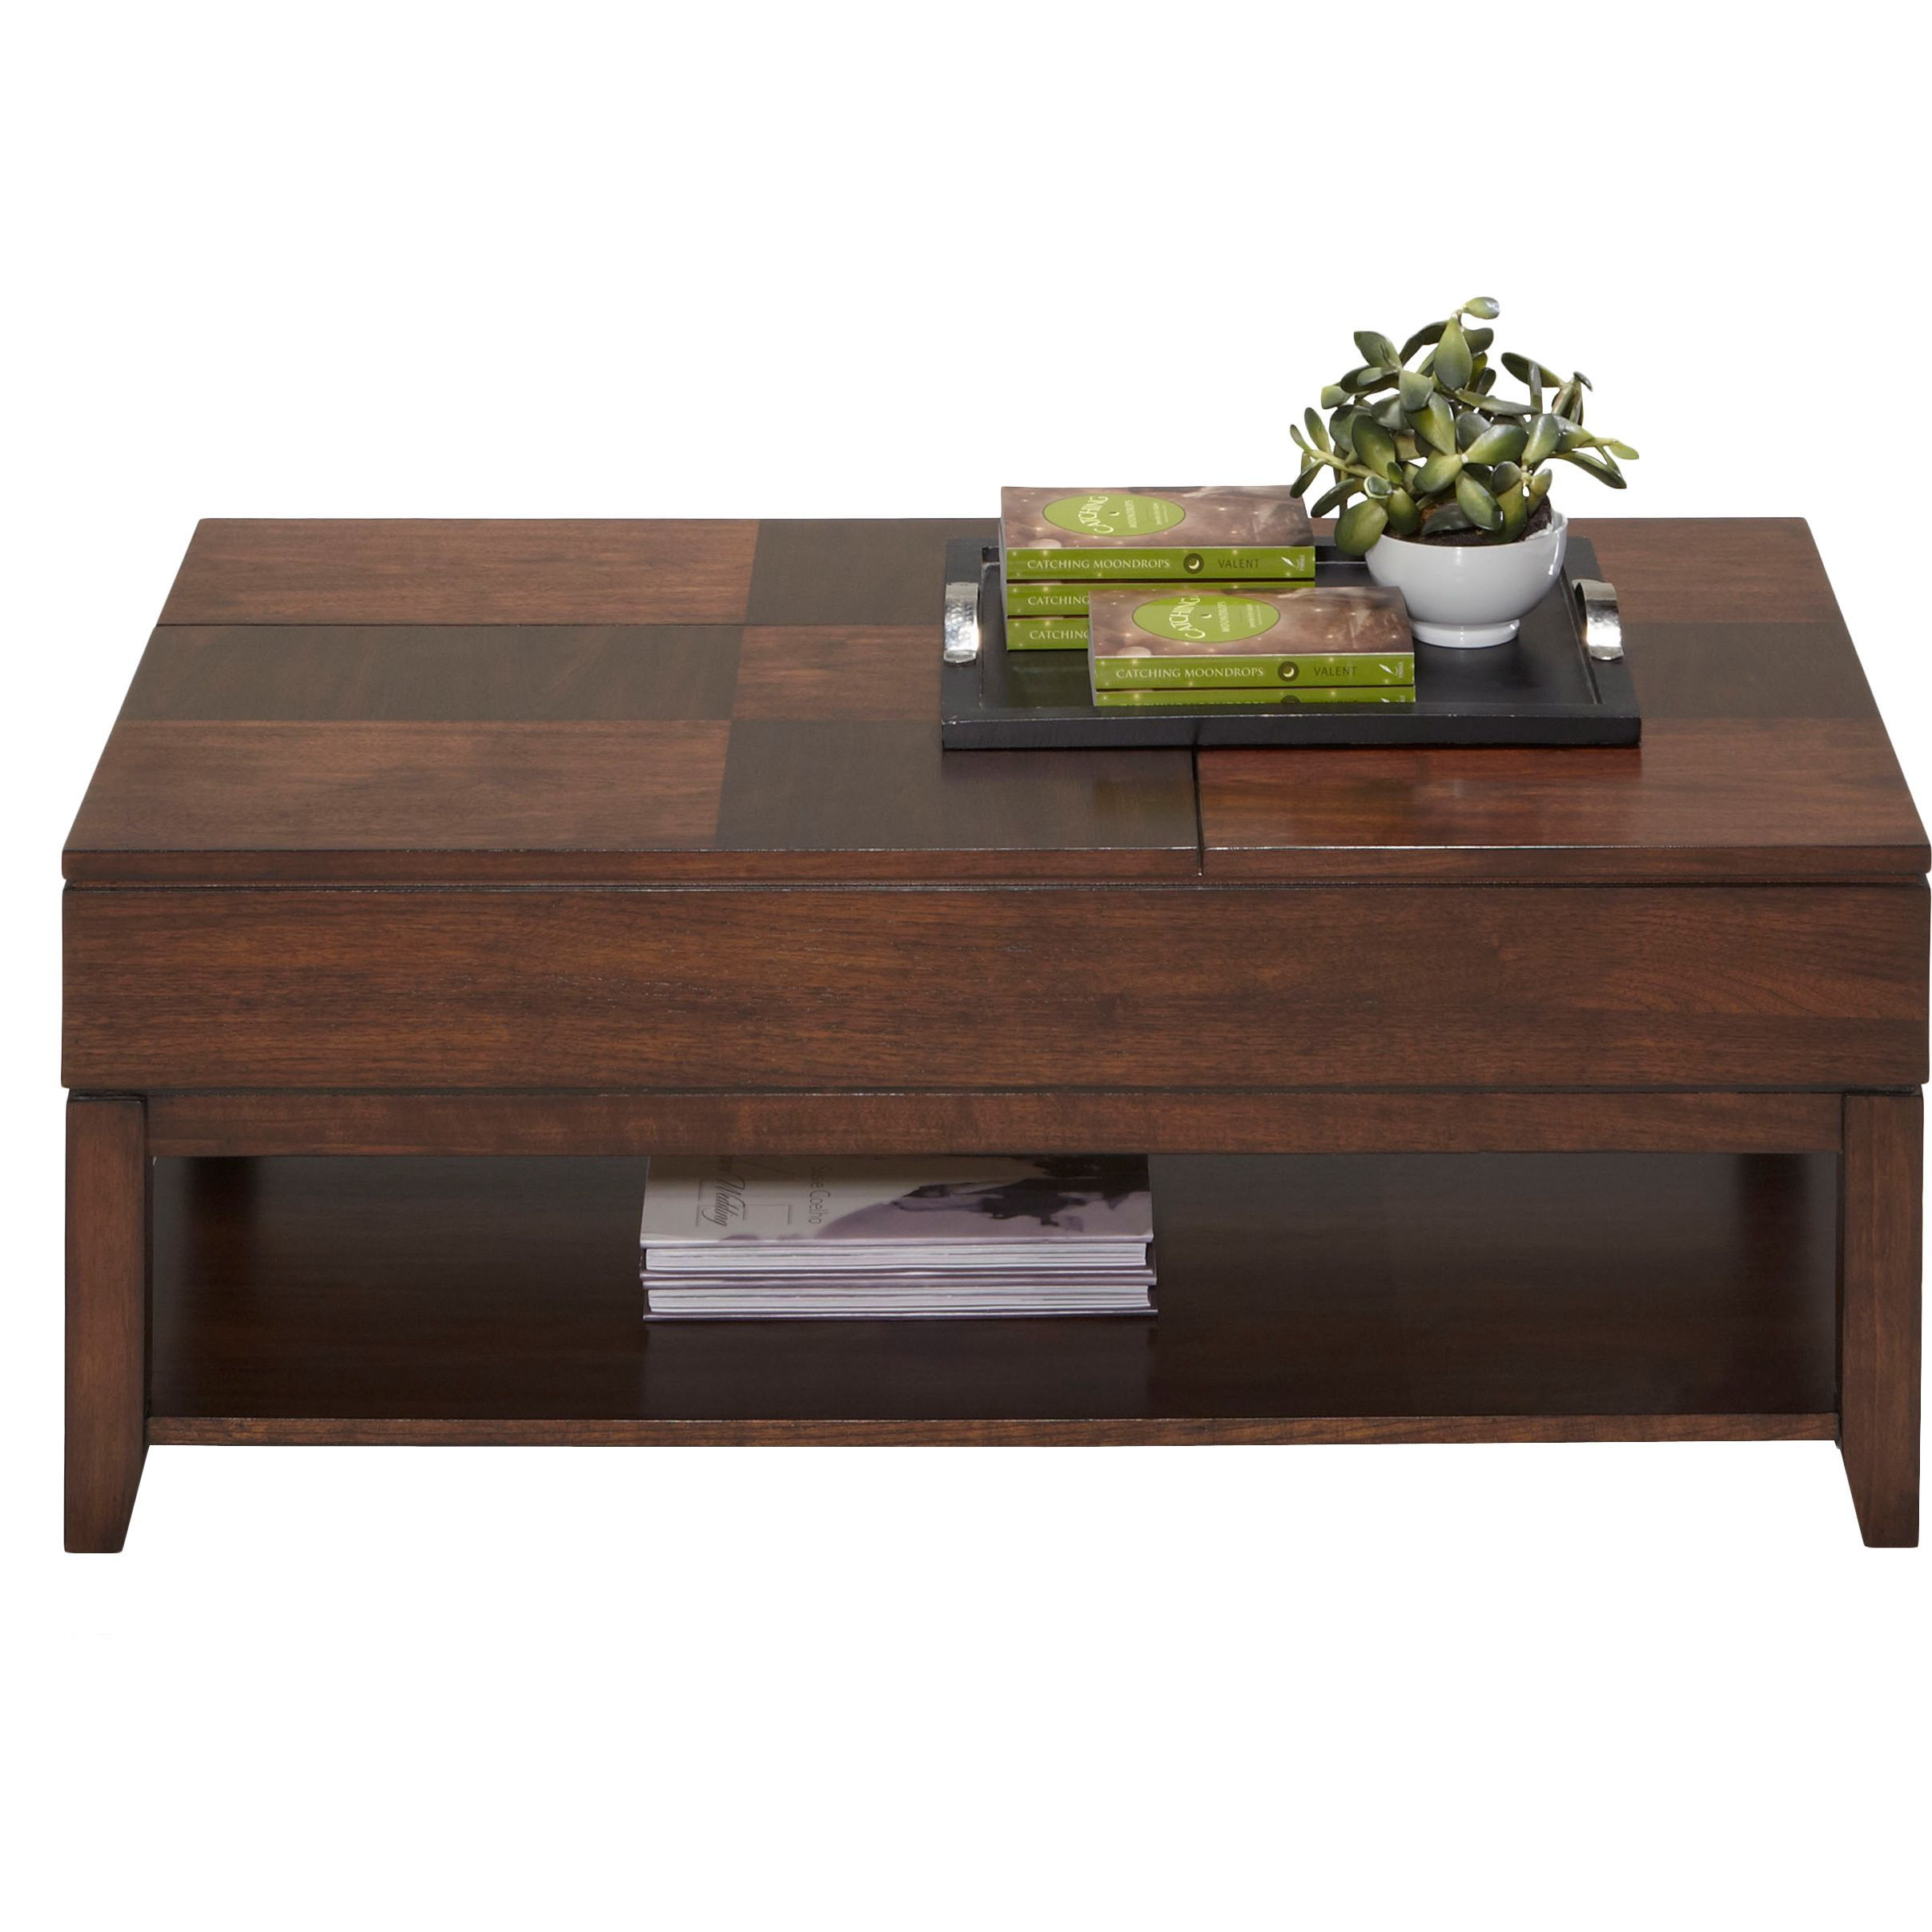 Overstock Com Online Shopping Bedding Furniture Electronics Jewelry Clothing More In 2020 Coffee Table Progressive Furniture Sofa End Tables